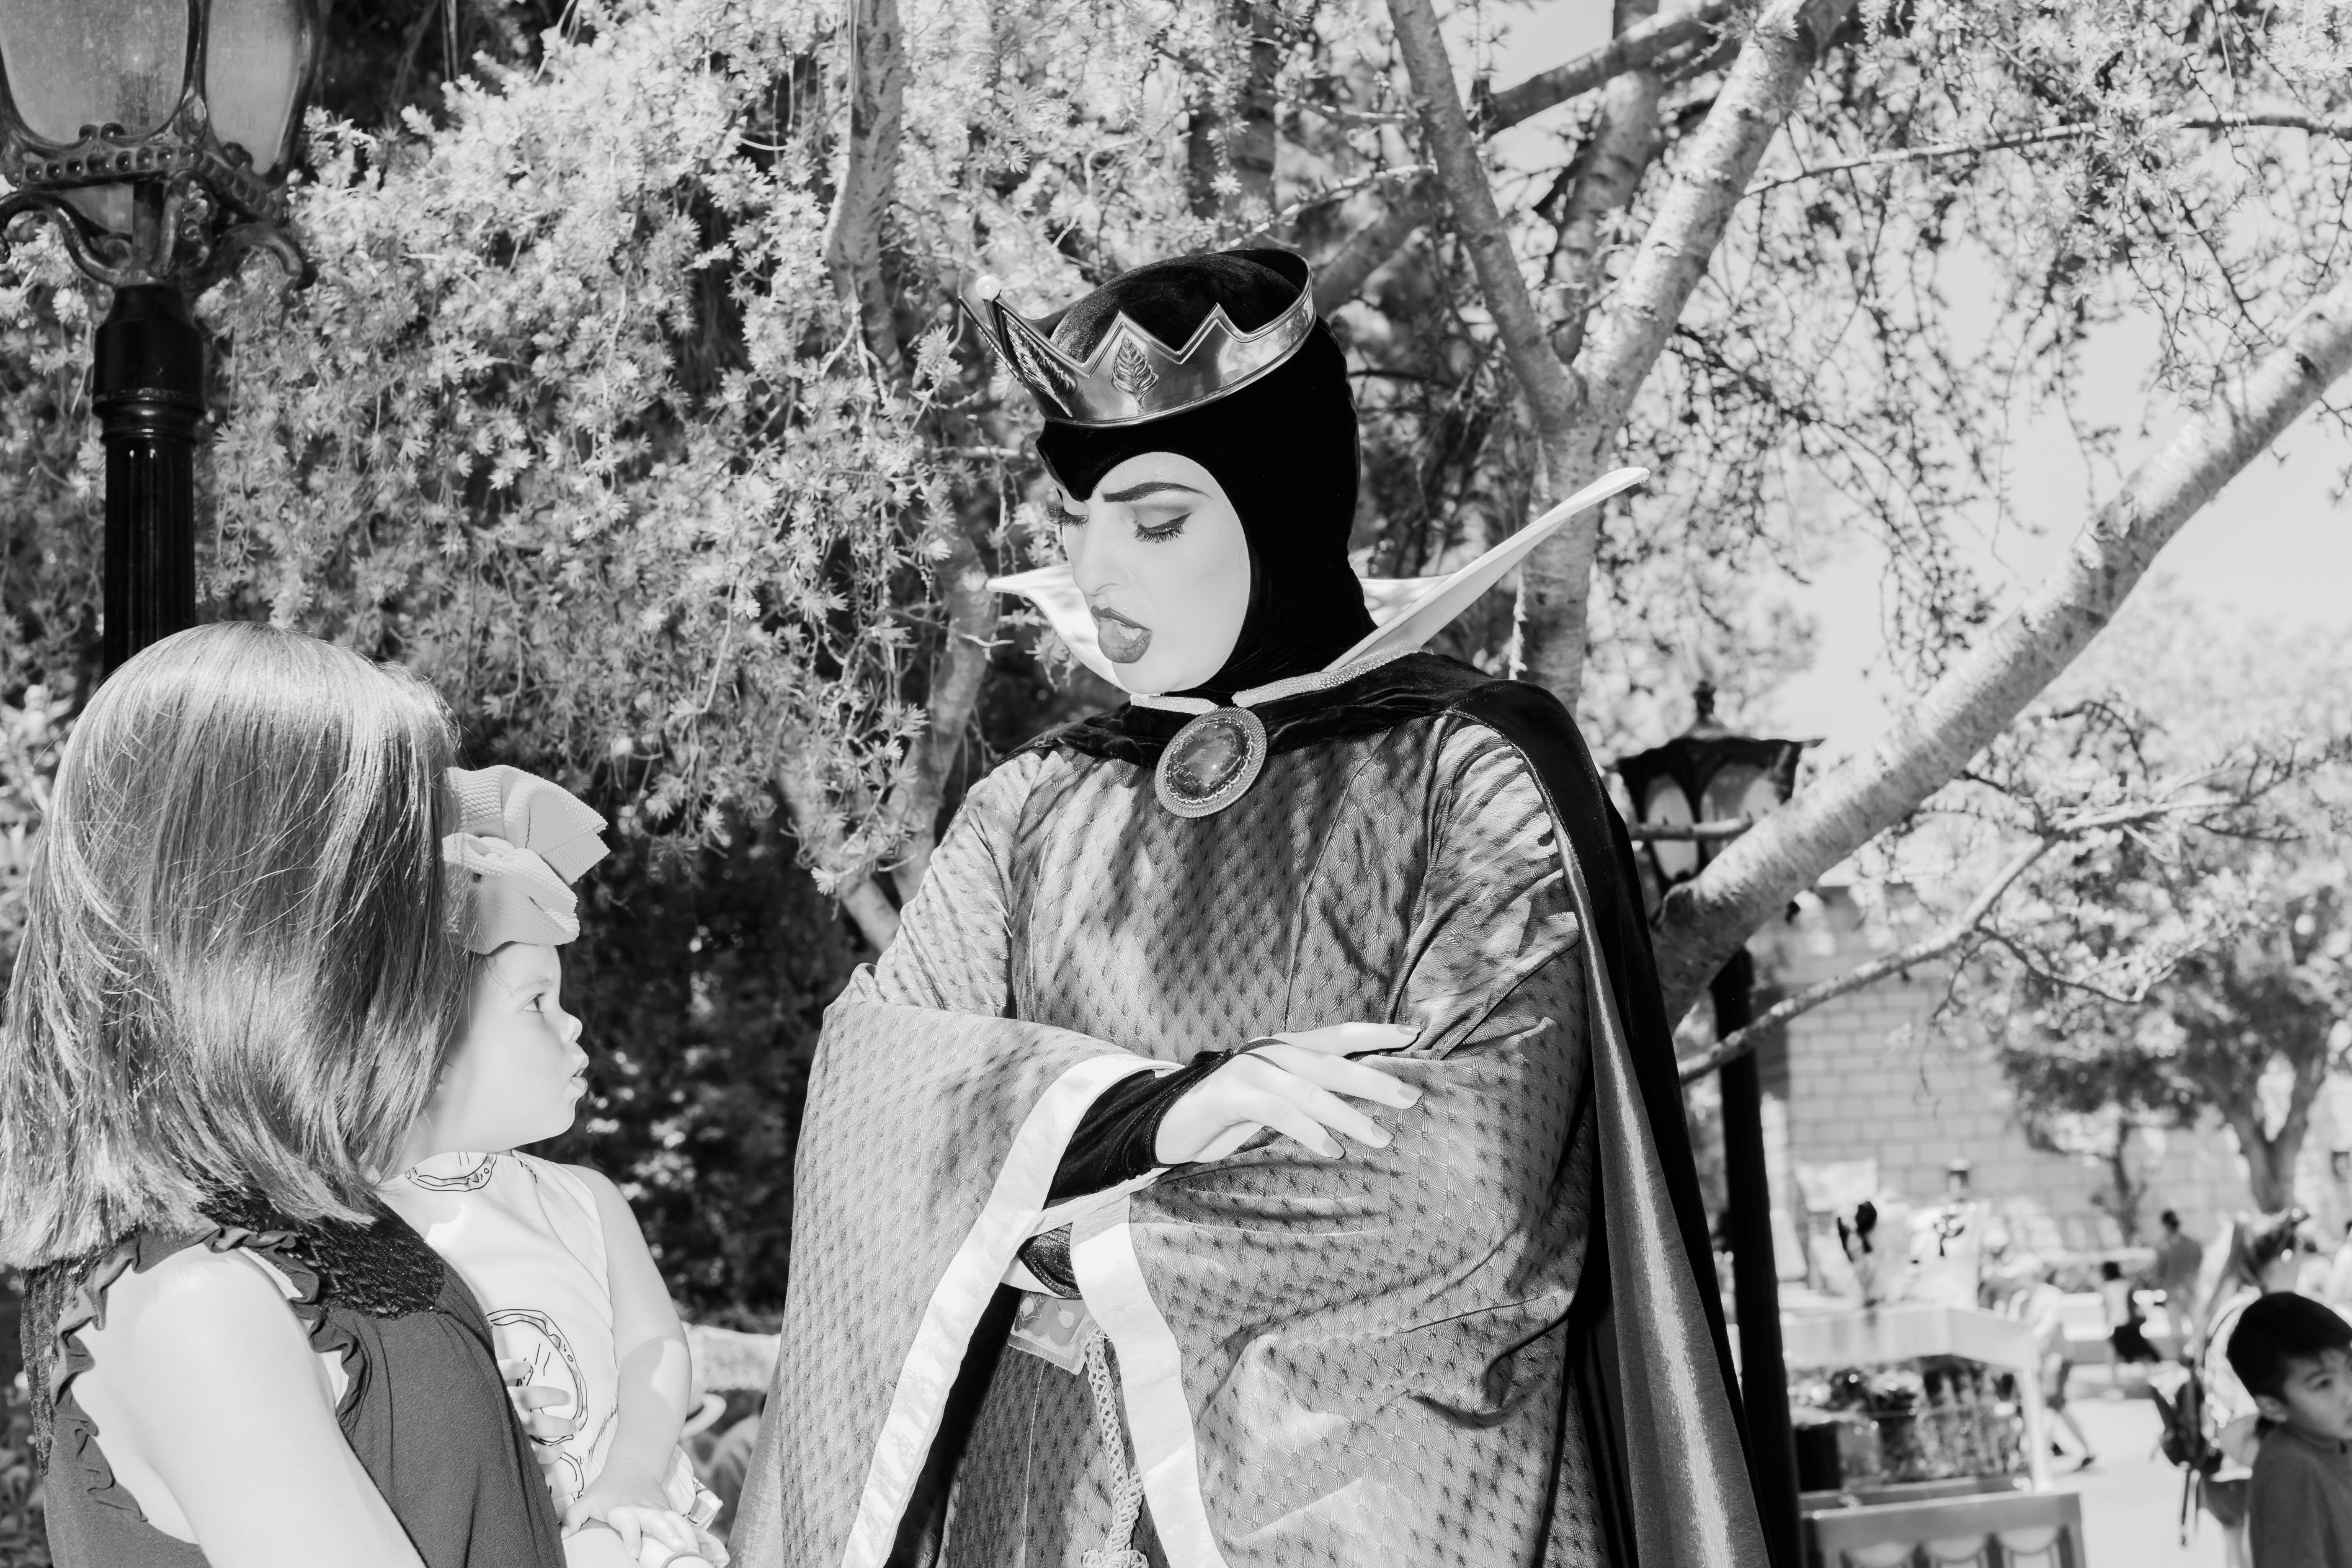 A cast member dressed as the Evil Queen from Snow White.